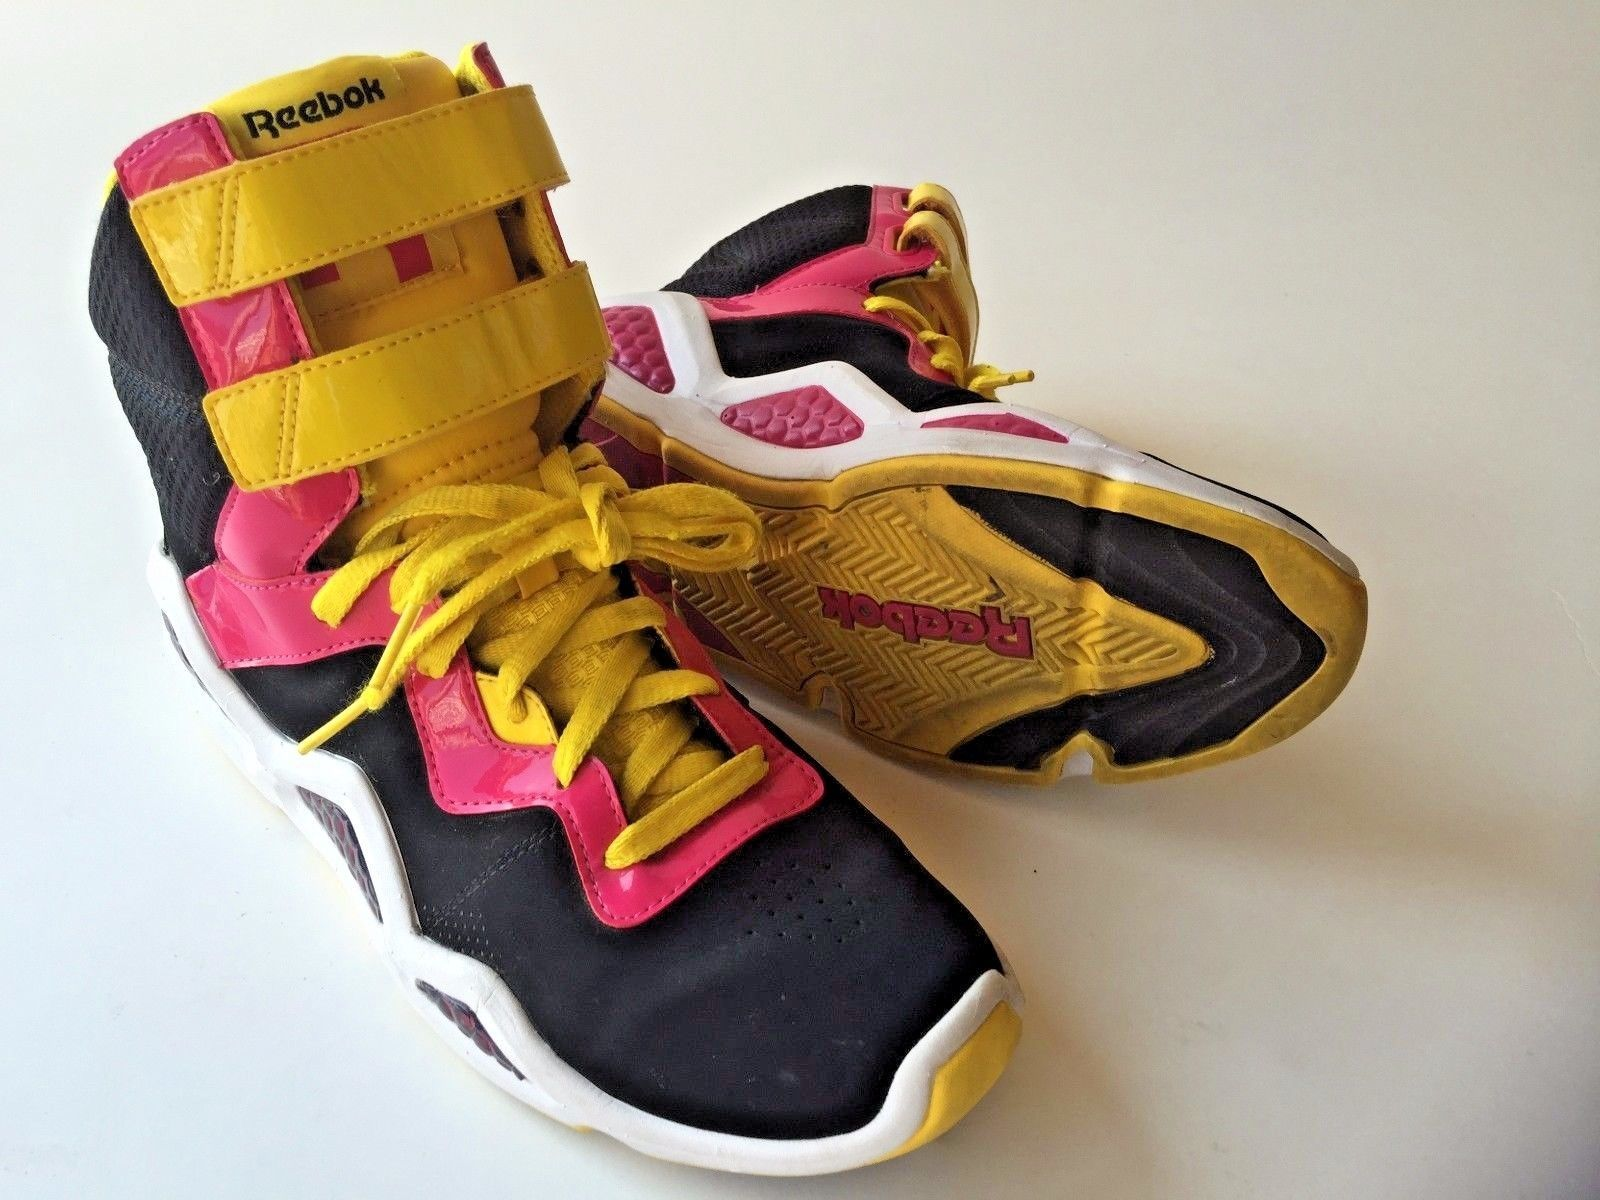 Reebok Hexalite Chi-Kaze Athletic Boots Women 9.5 Black/Pink/Yellow Excellent - $77.99